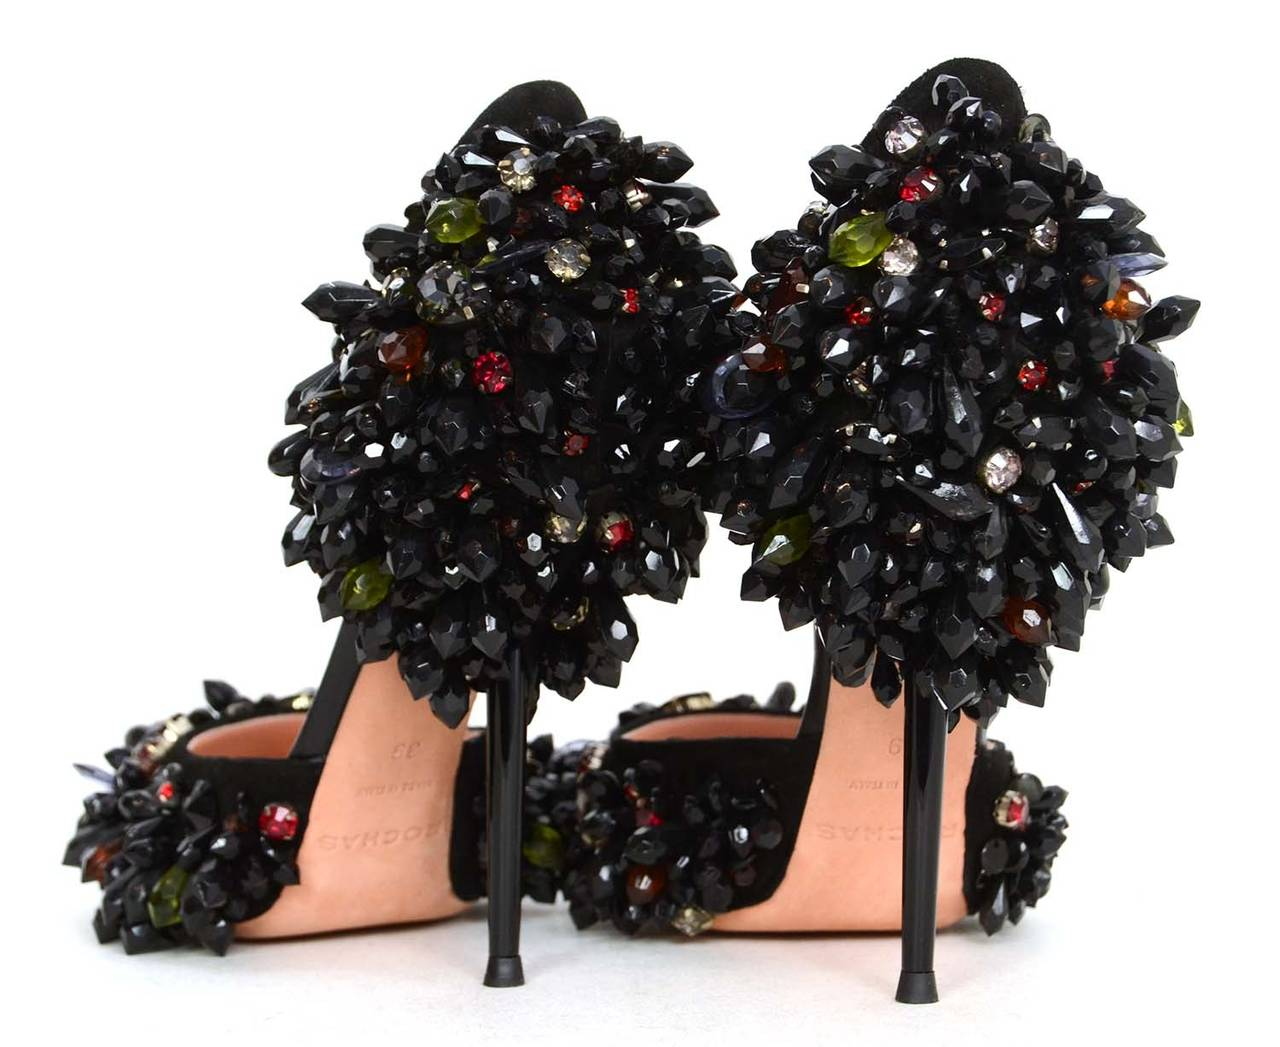 Rochas Black Beaded Pointed Toe Pumps  Features red, pink, and green beads throughout      Made in: Italy     Color: Black, red, green, pink, and gold     Composition: Leather, suede, beads and metal     Sole Stamp: ROCHAS